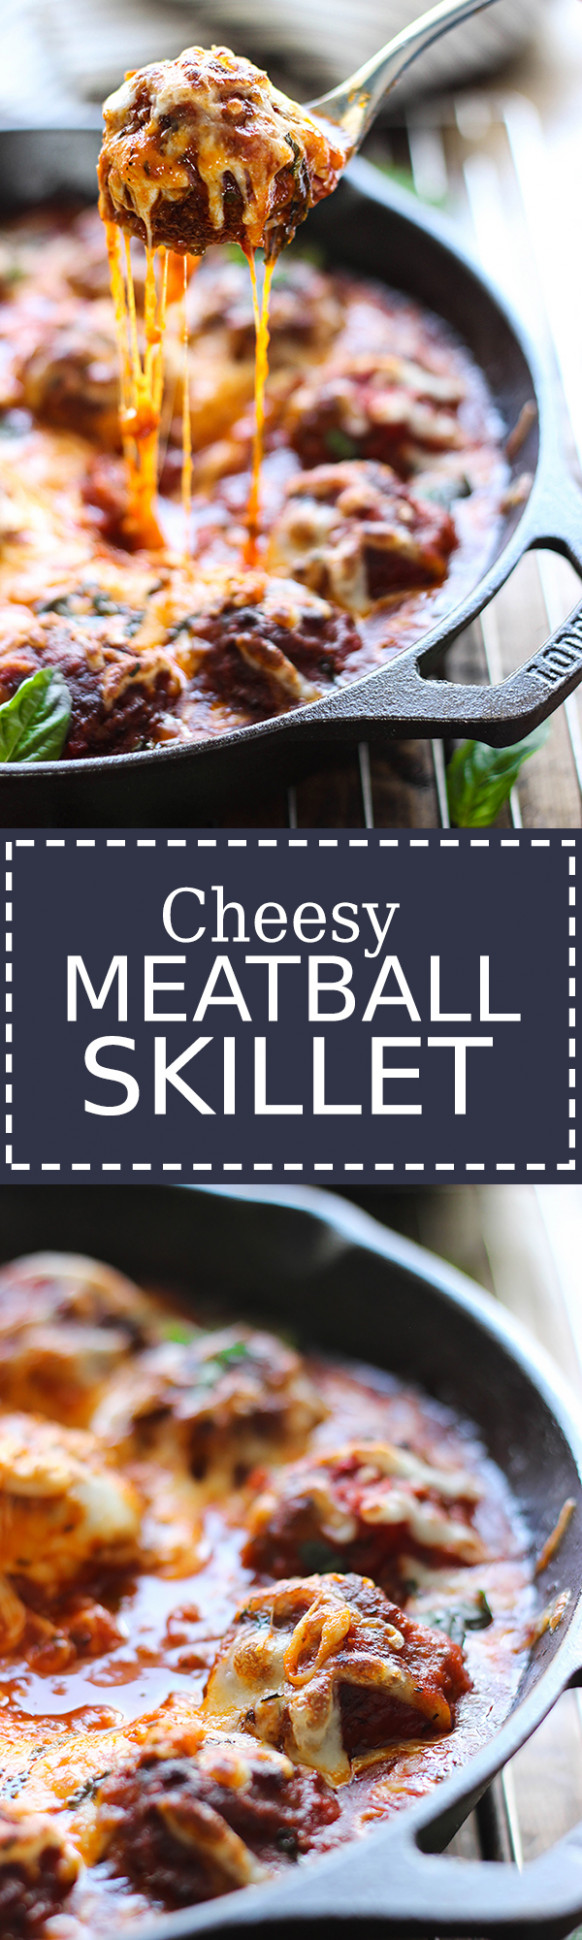 Cheesy Meatball Skillet - The Cooking Jar - Dinner Recipes Coles